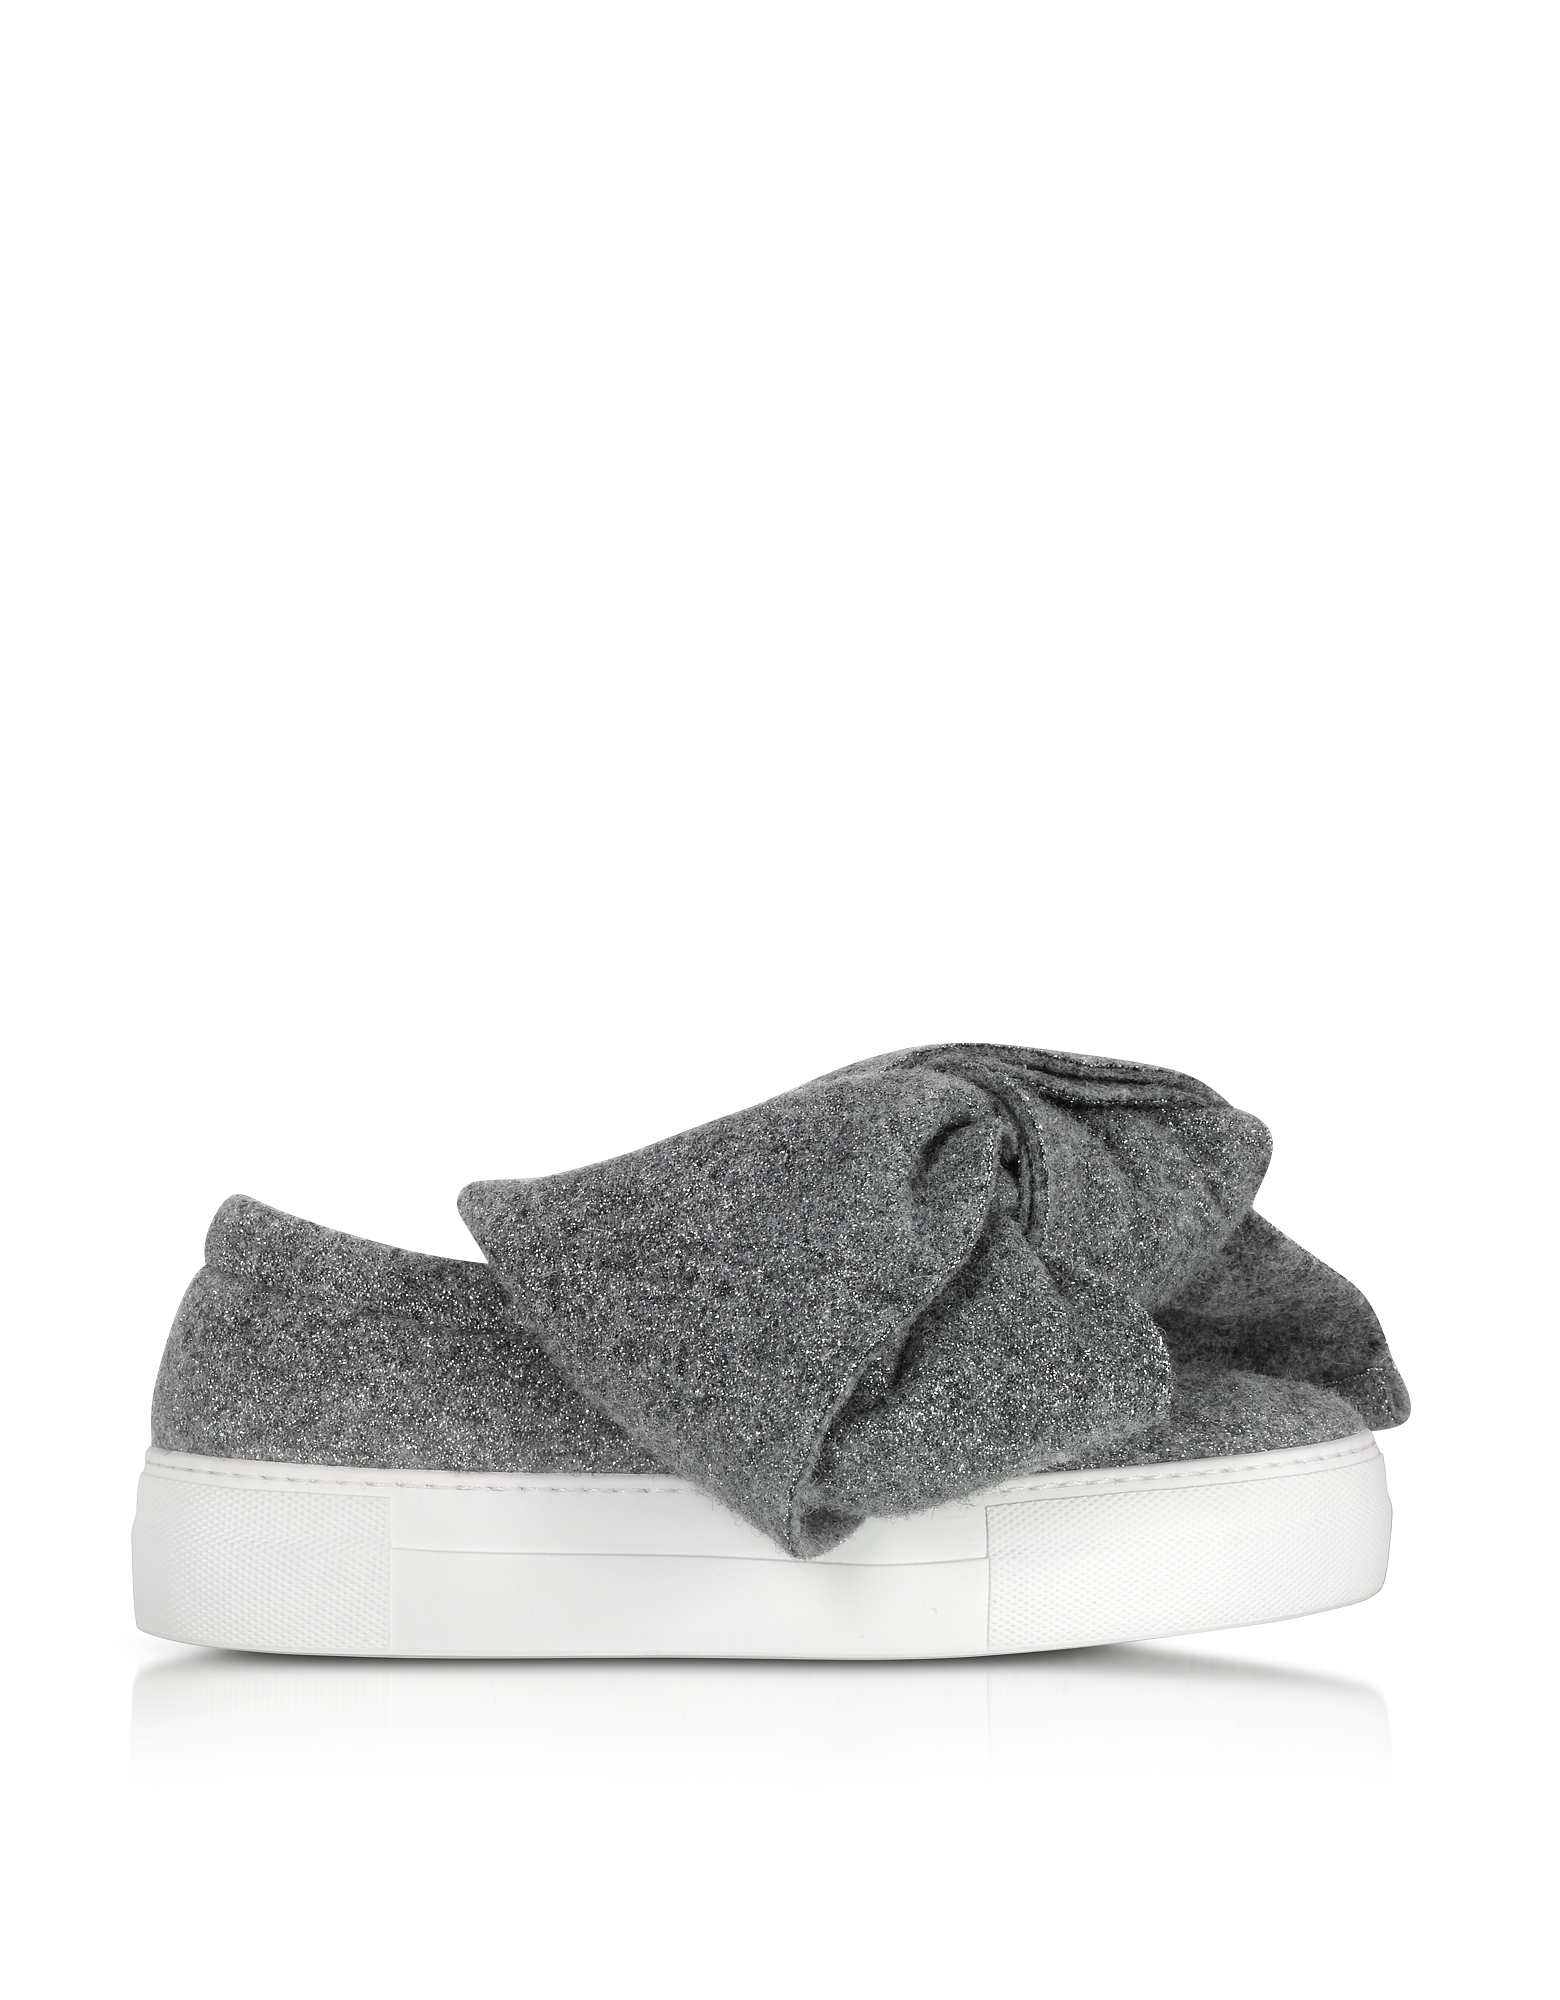 Joshua Sanders Shoes, Grey Lurex Bow Slip on Sneakers